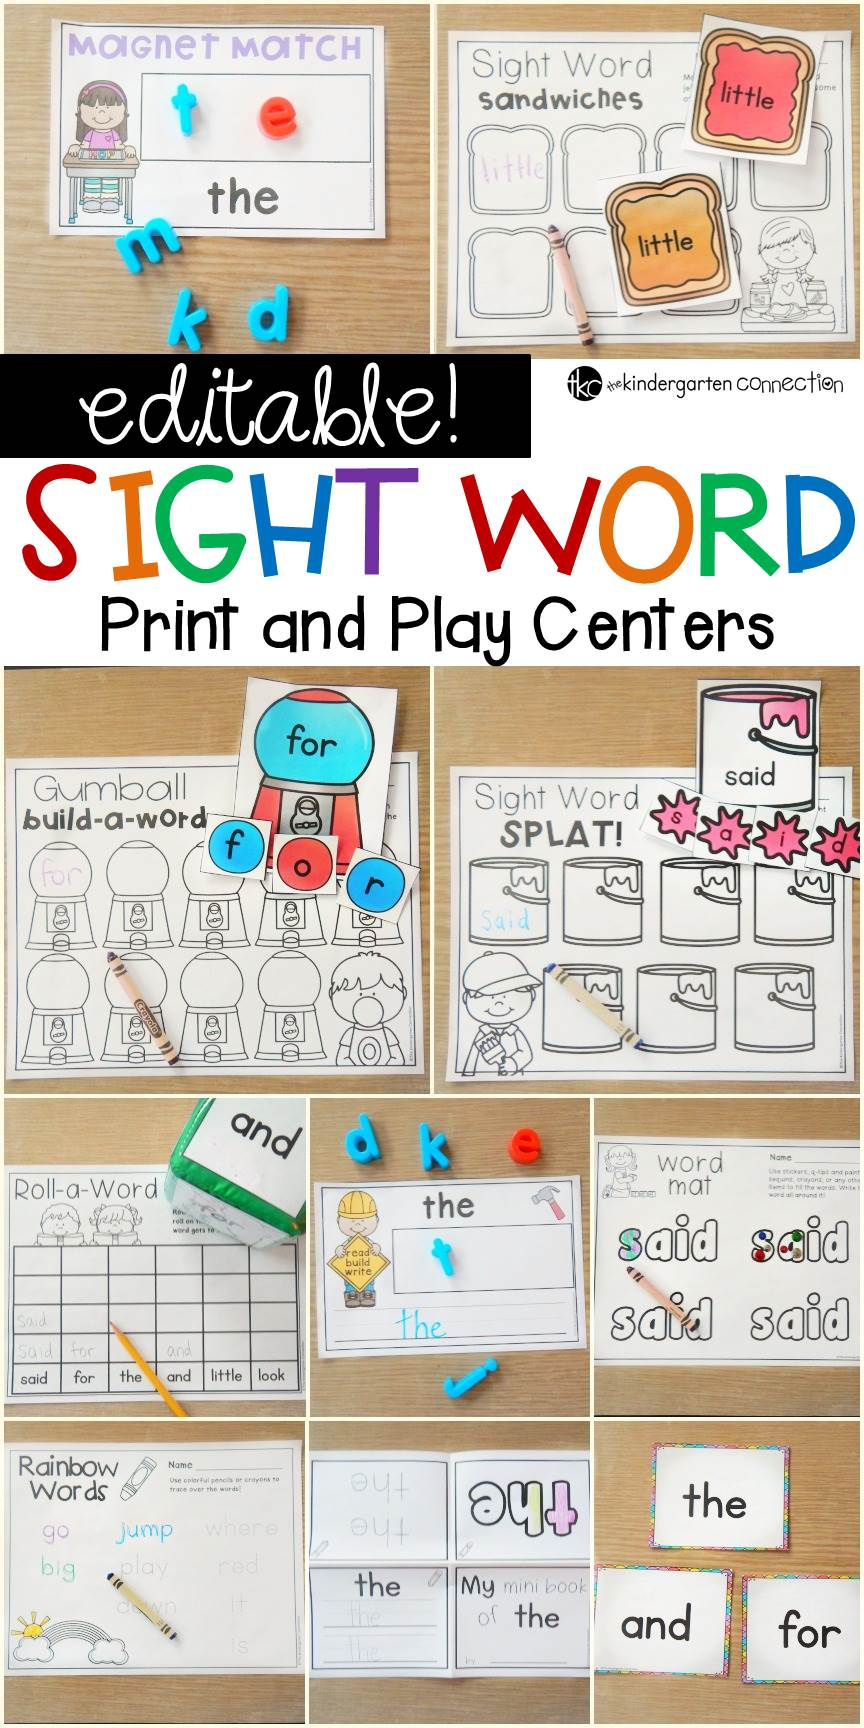 EDITABLE sight word games and centers for any word list!